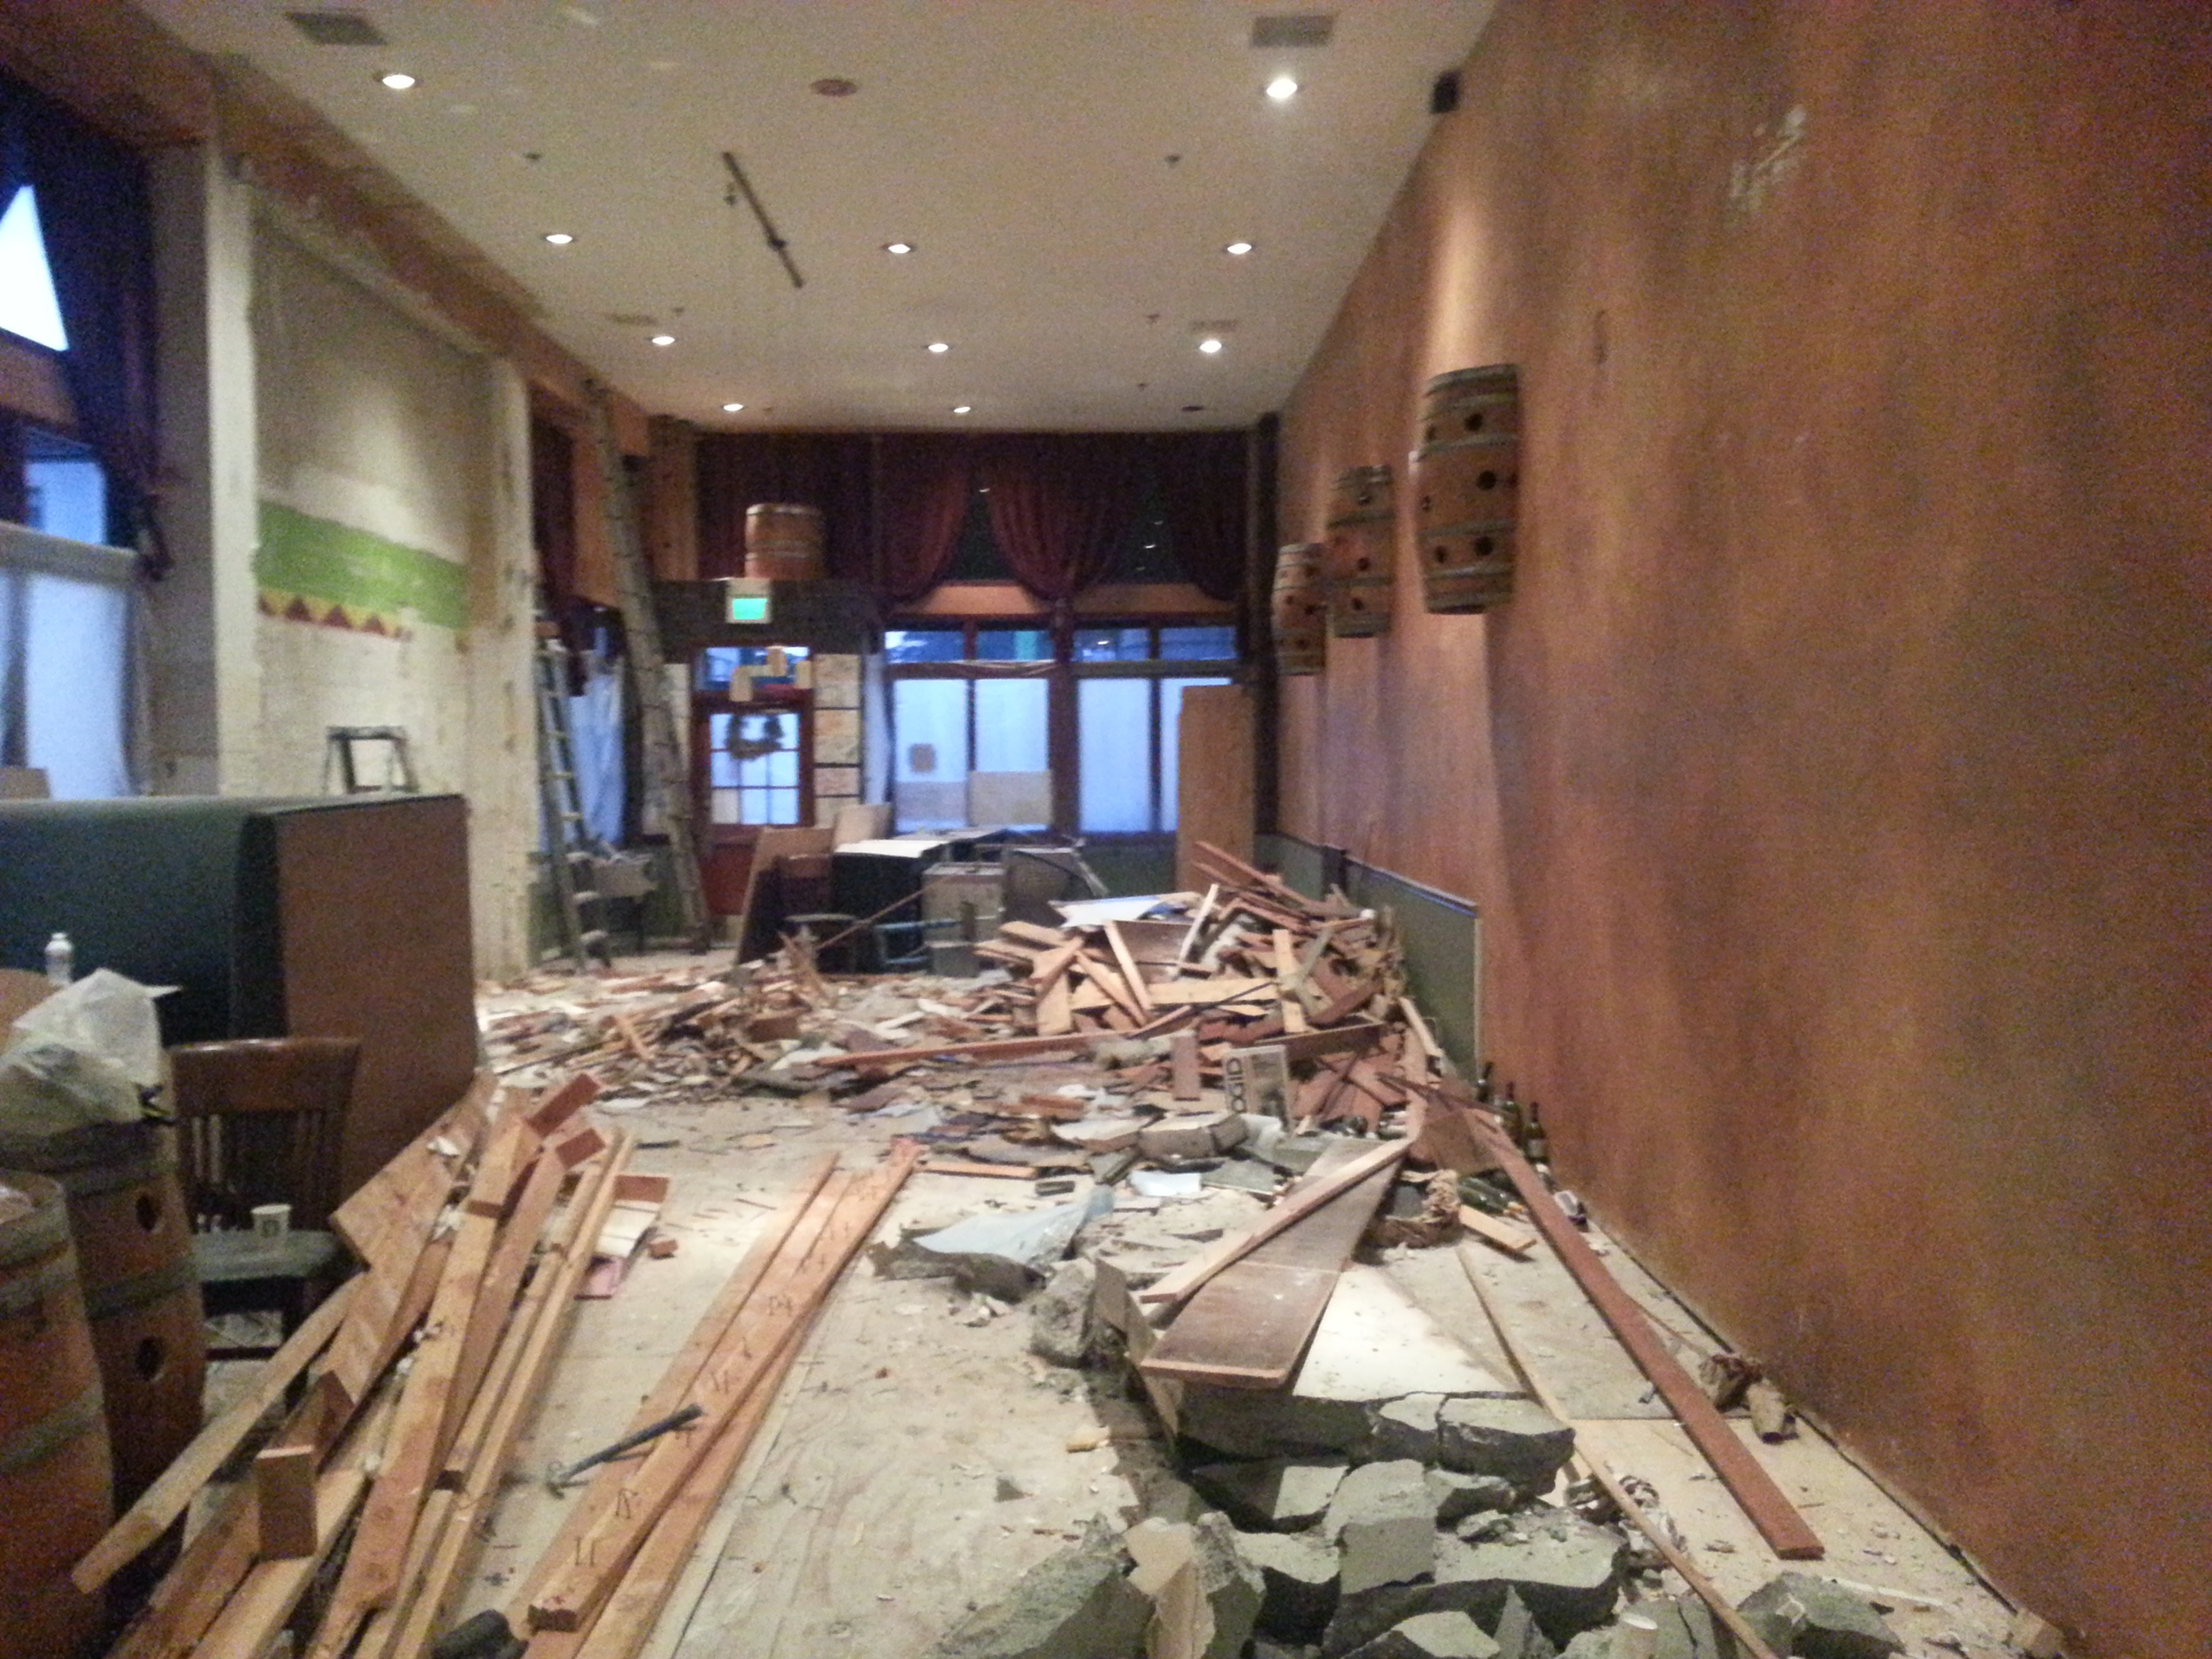 Demolishing to begin a new restaurant